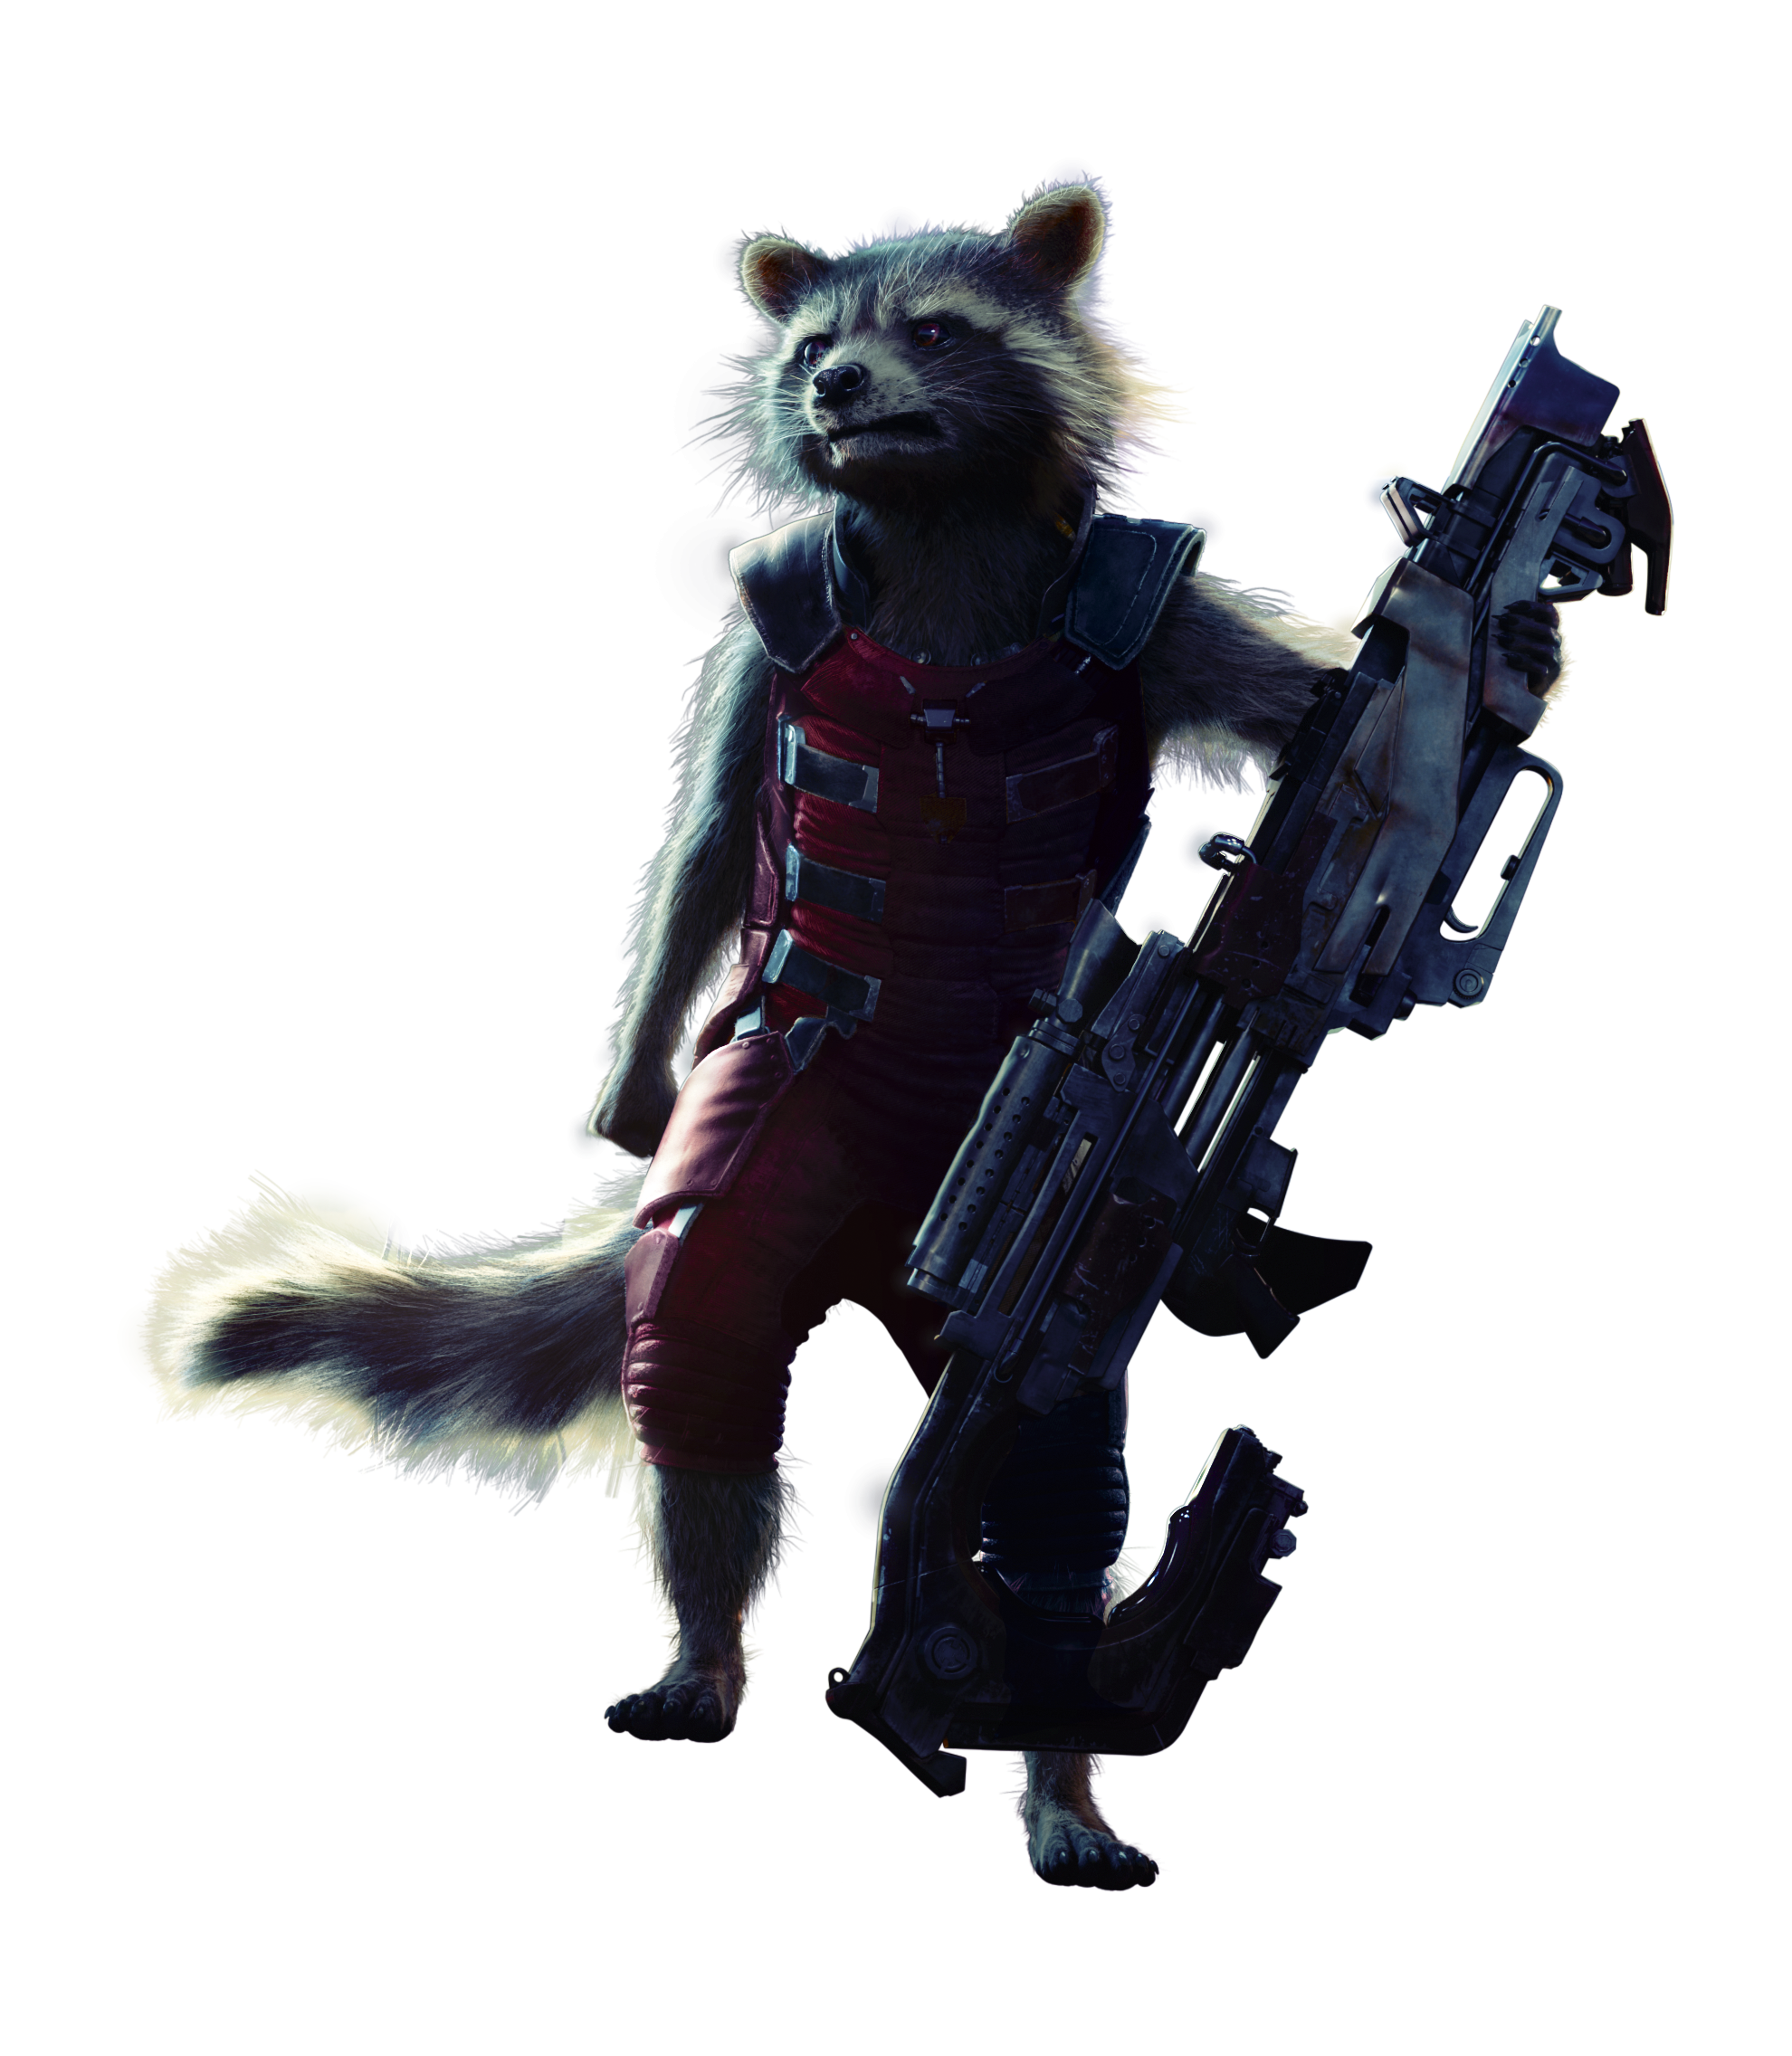 Rocket raccoon png. Image racoon marvel cinematic